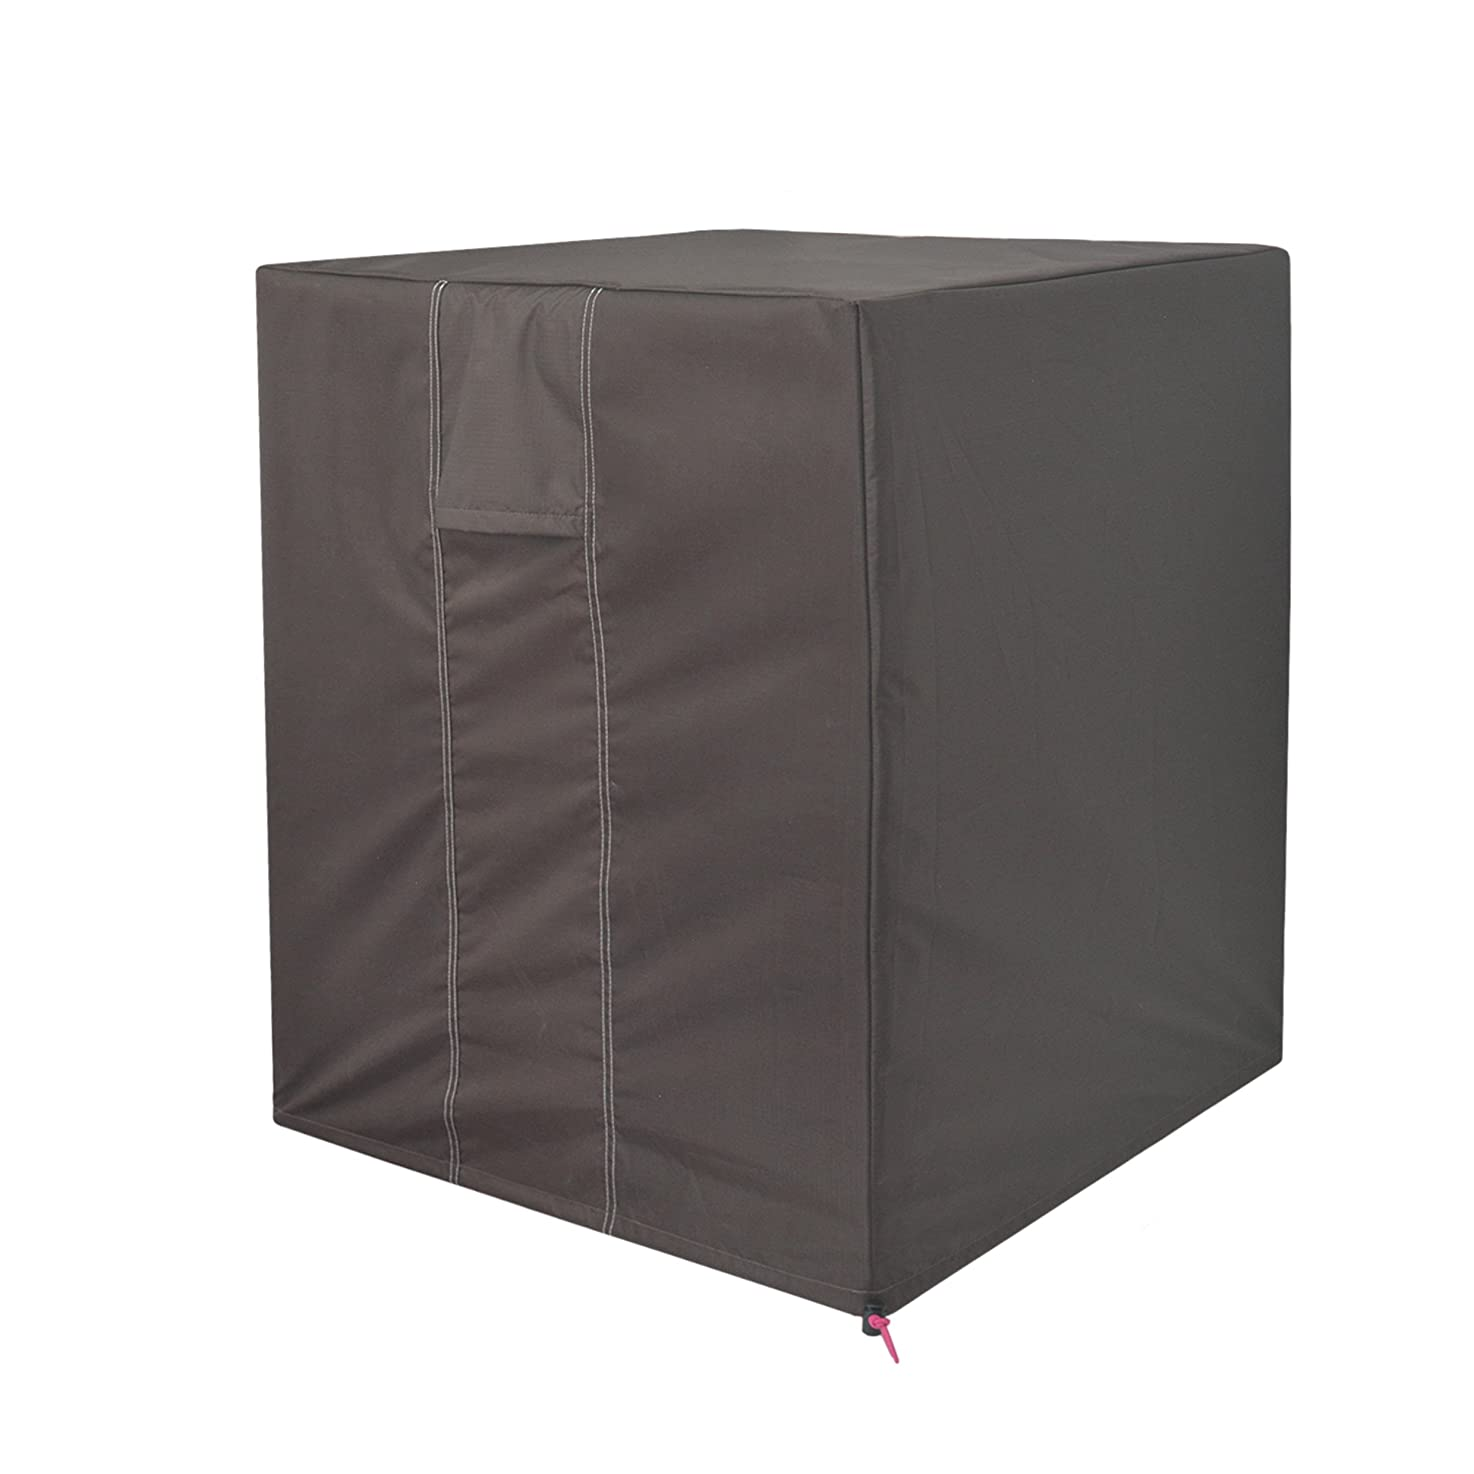 Jeacent Central Air Conditioner Covers for Outside Units jrohvrojjxwbj4